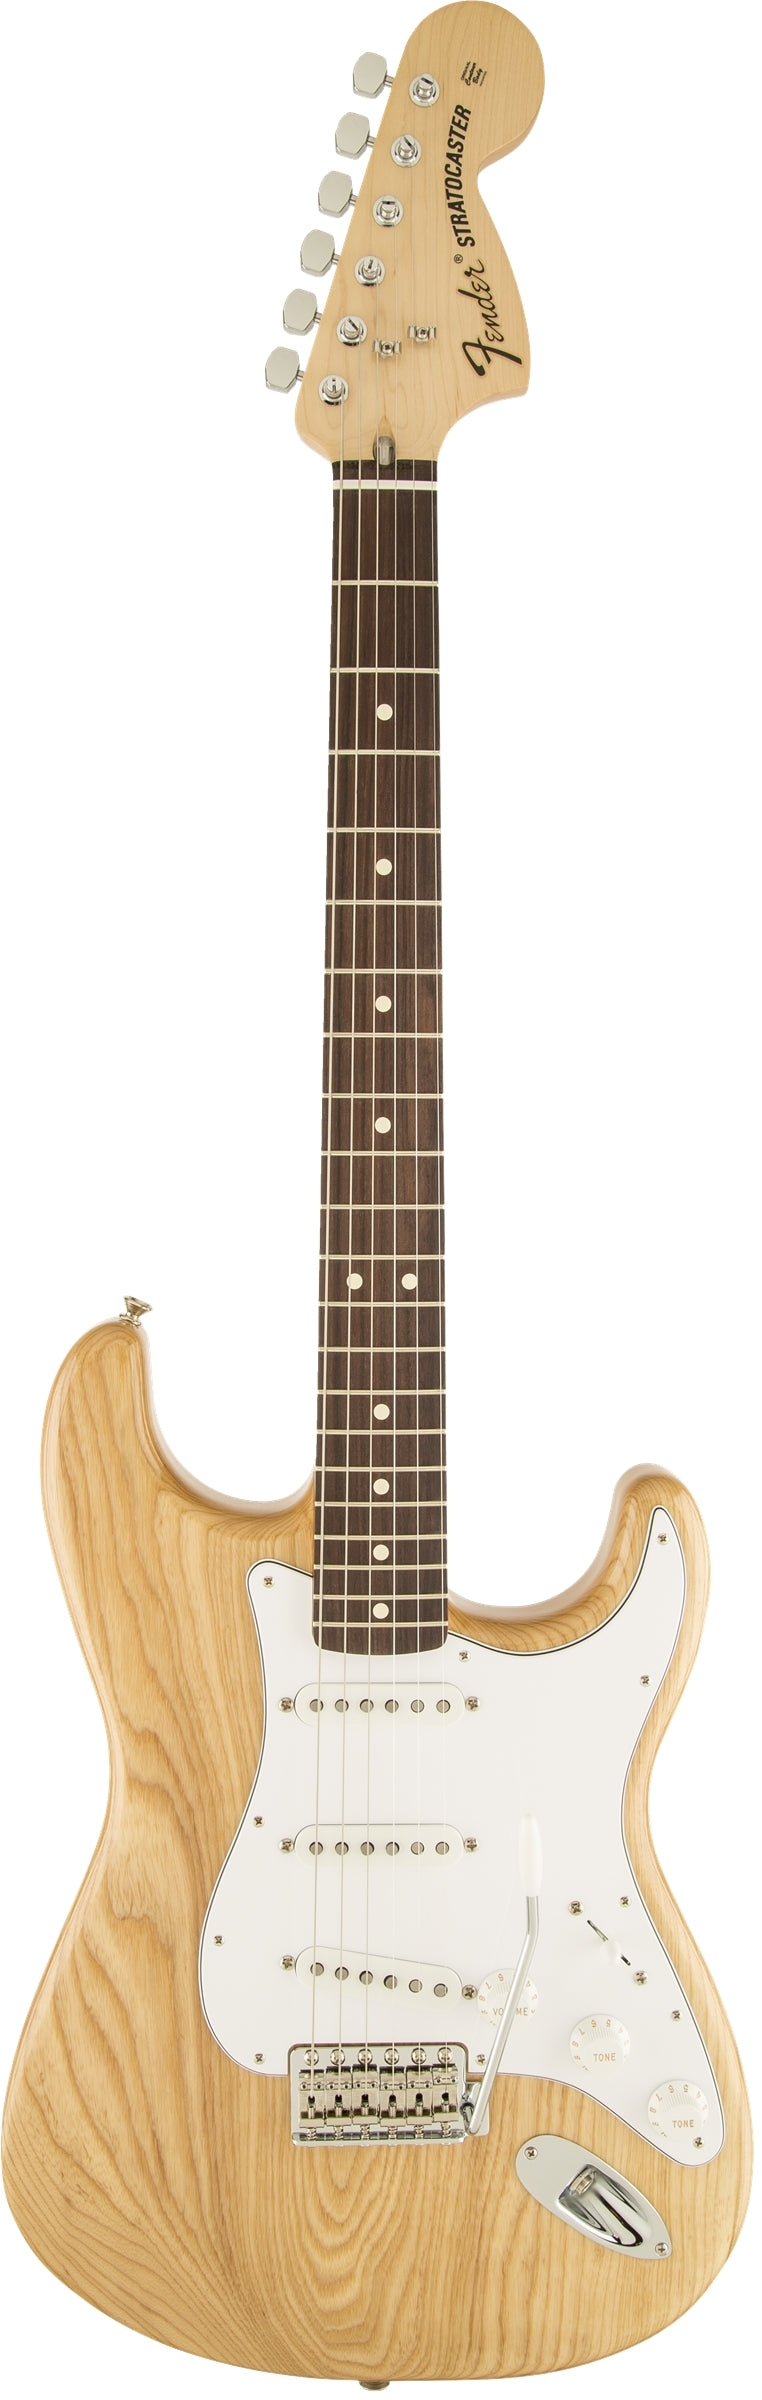 Fender Classic Series 70's Stratocaster w/ Pau Ferro Fingerboard Electric Guitar - Natural